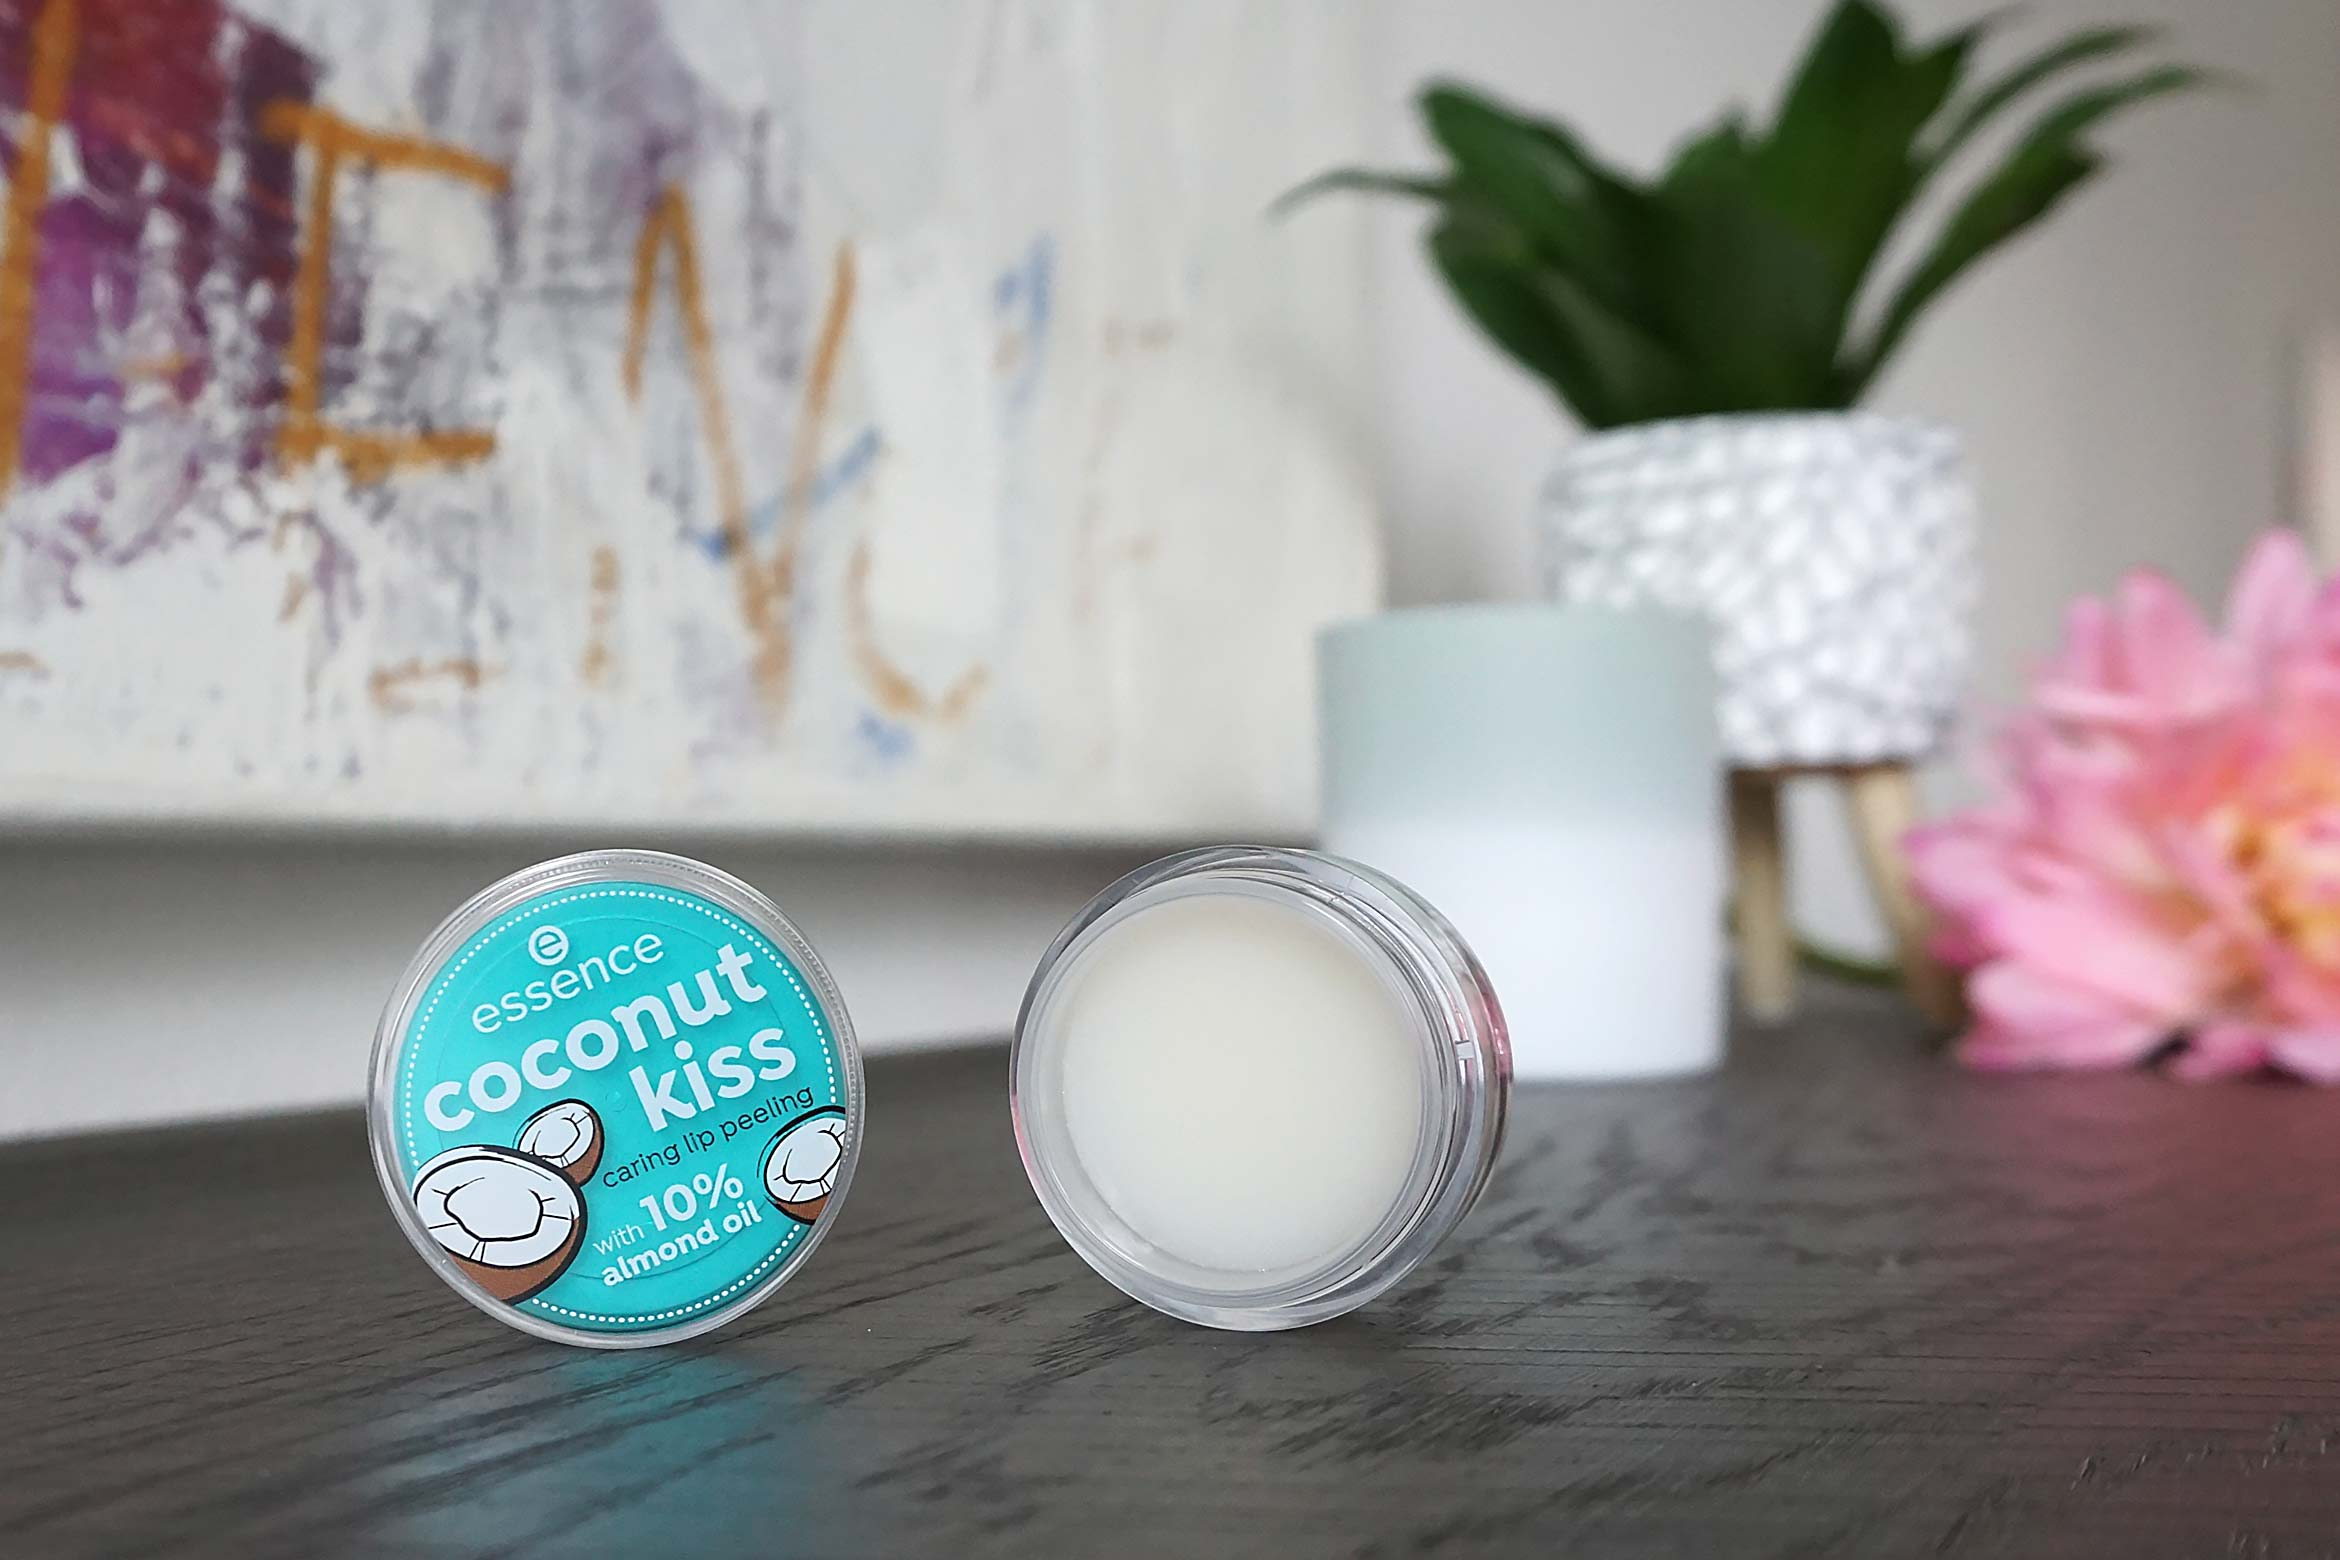 essence coconut kiss caring lip peeling review-1